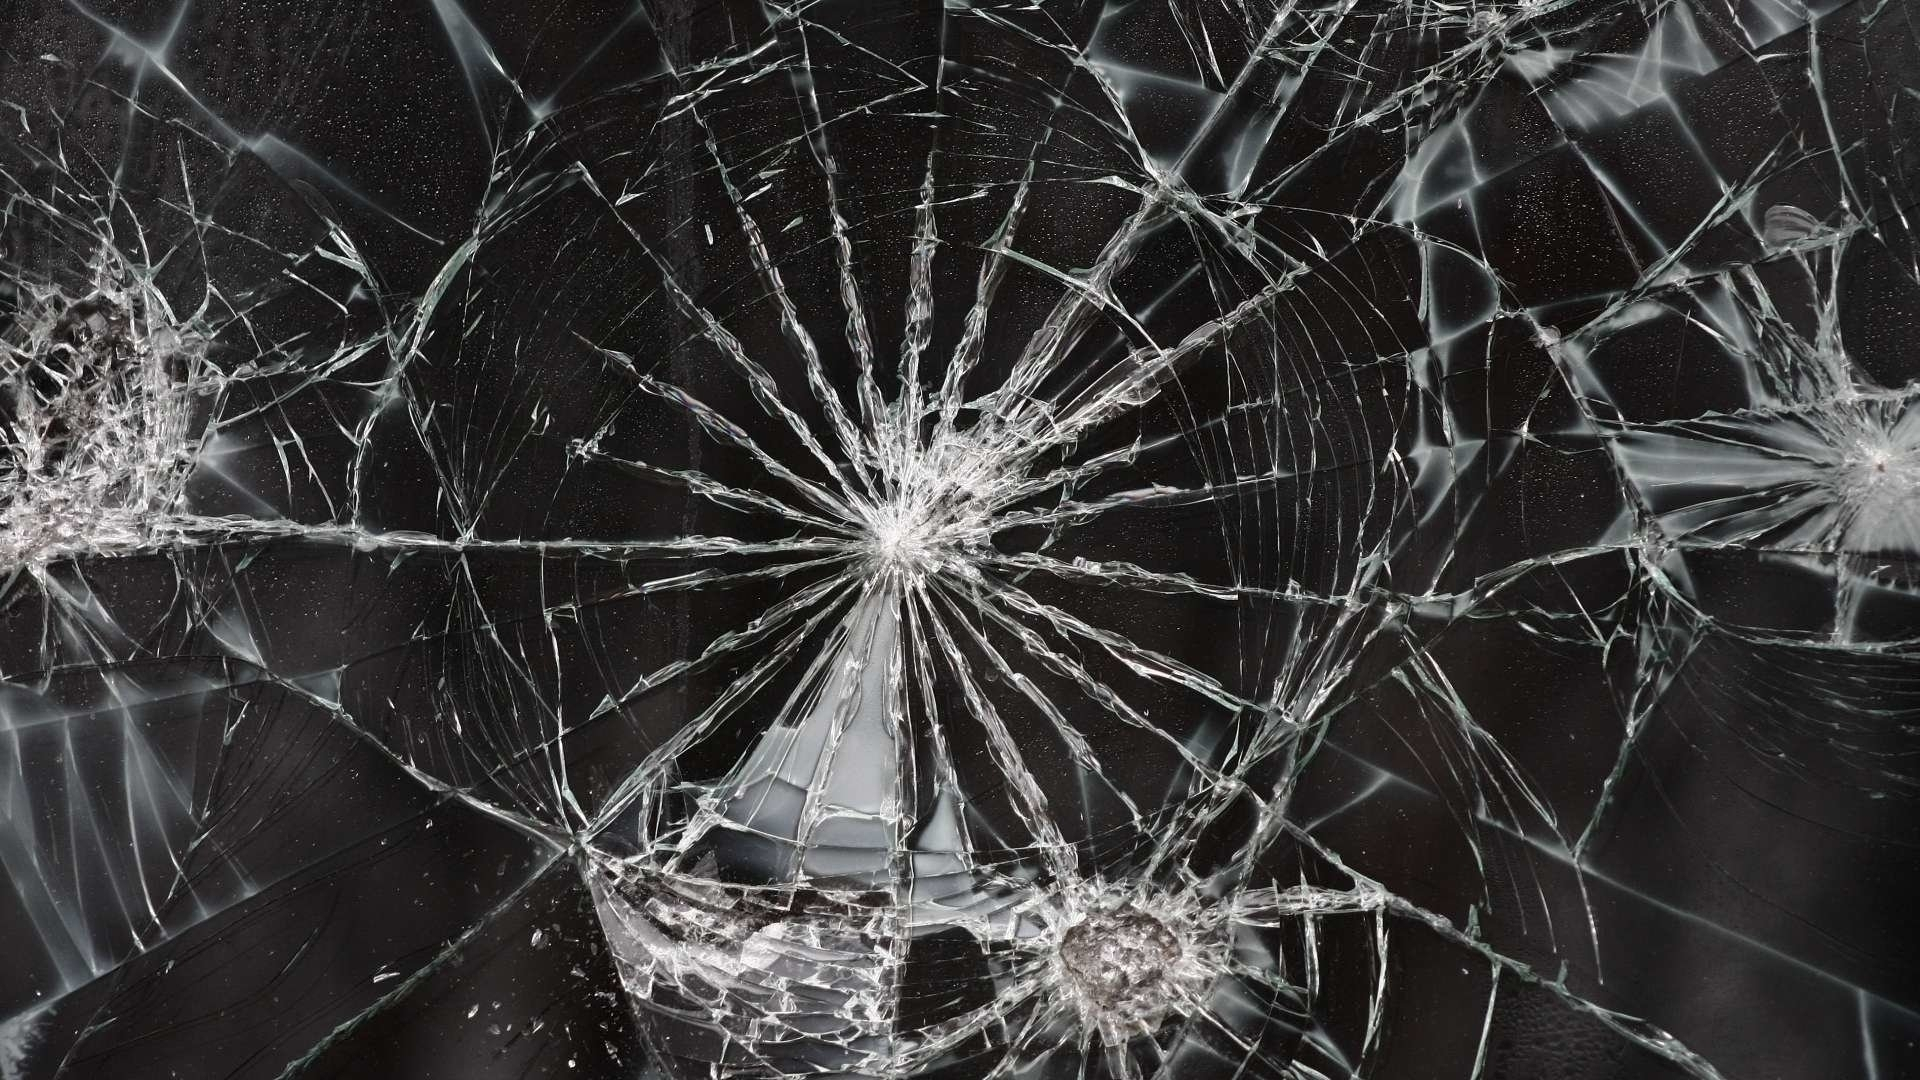 10 Best Cracked Screen Hd Wallpaper FULL HD 1080p For PC Desktop